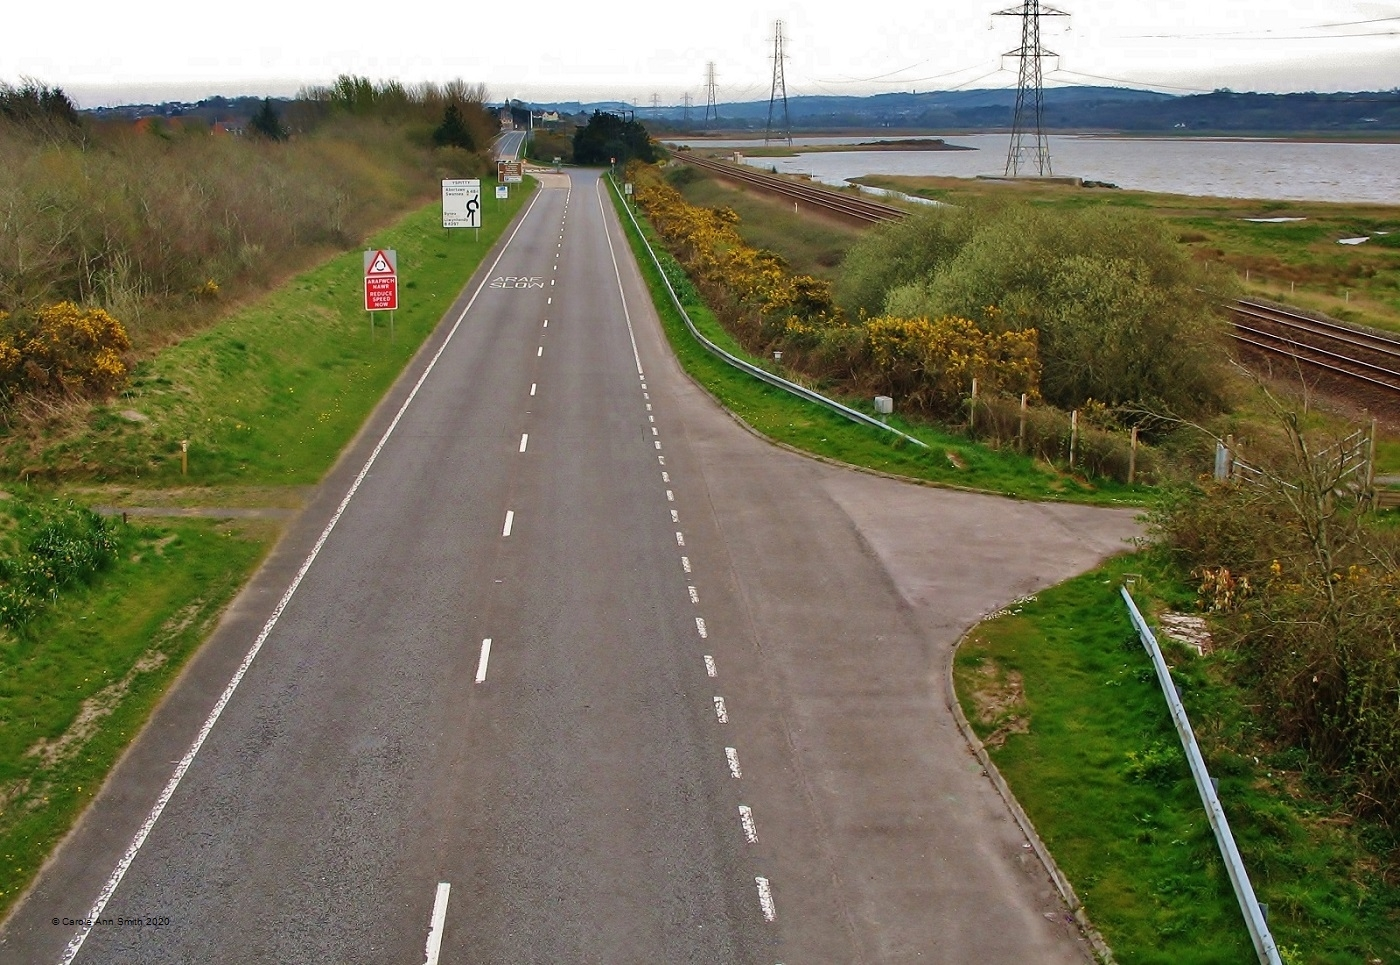 Carole-Ann-Smith_Llanelli-Photographic-Society_The-A484-during-Lockdown-towards-Loughor-Bridge